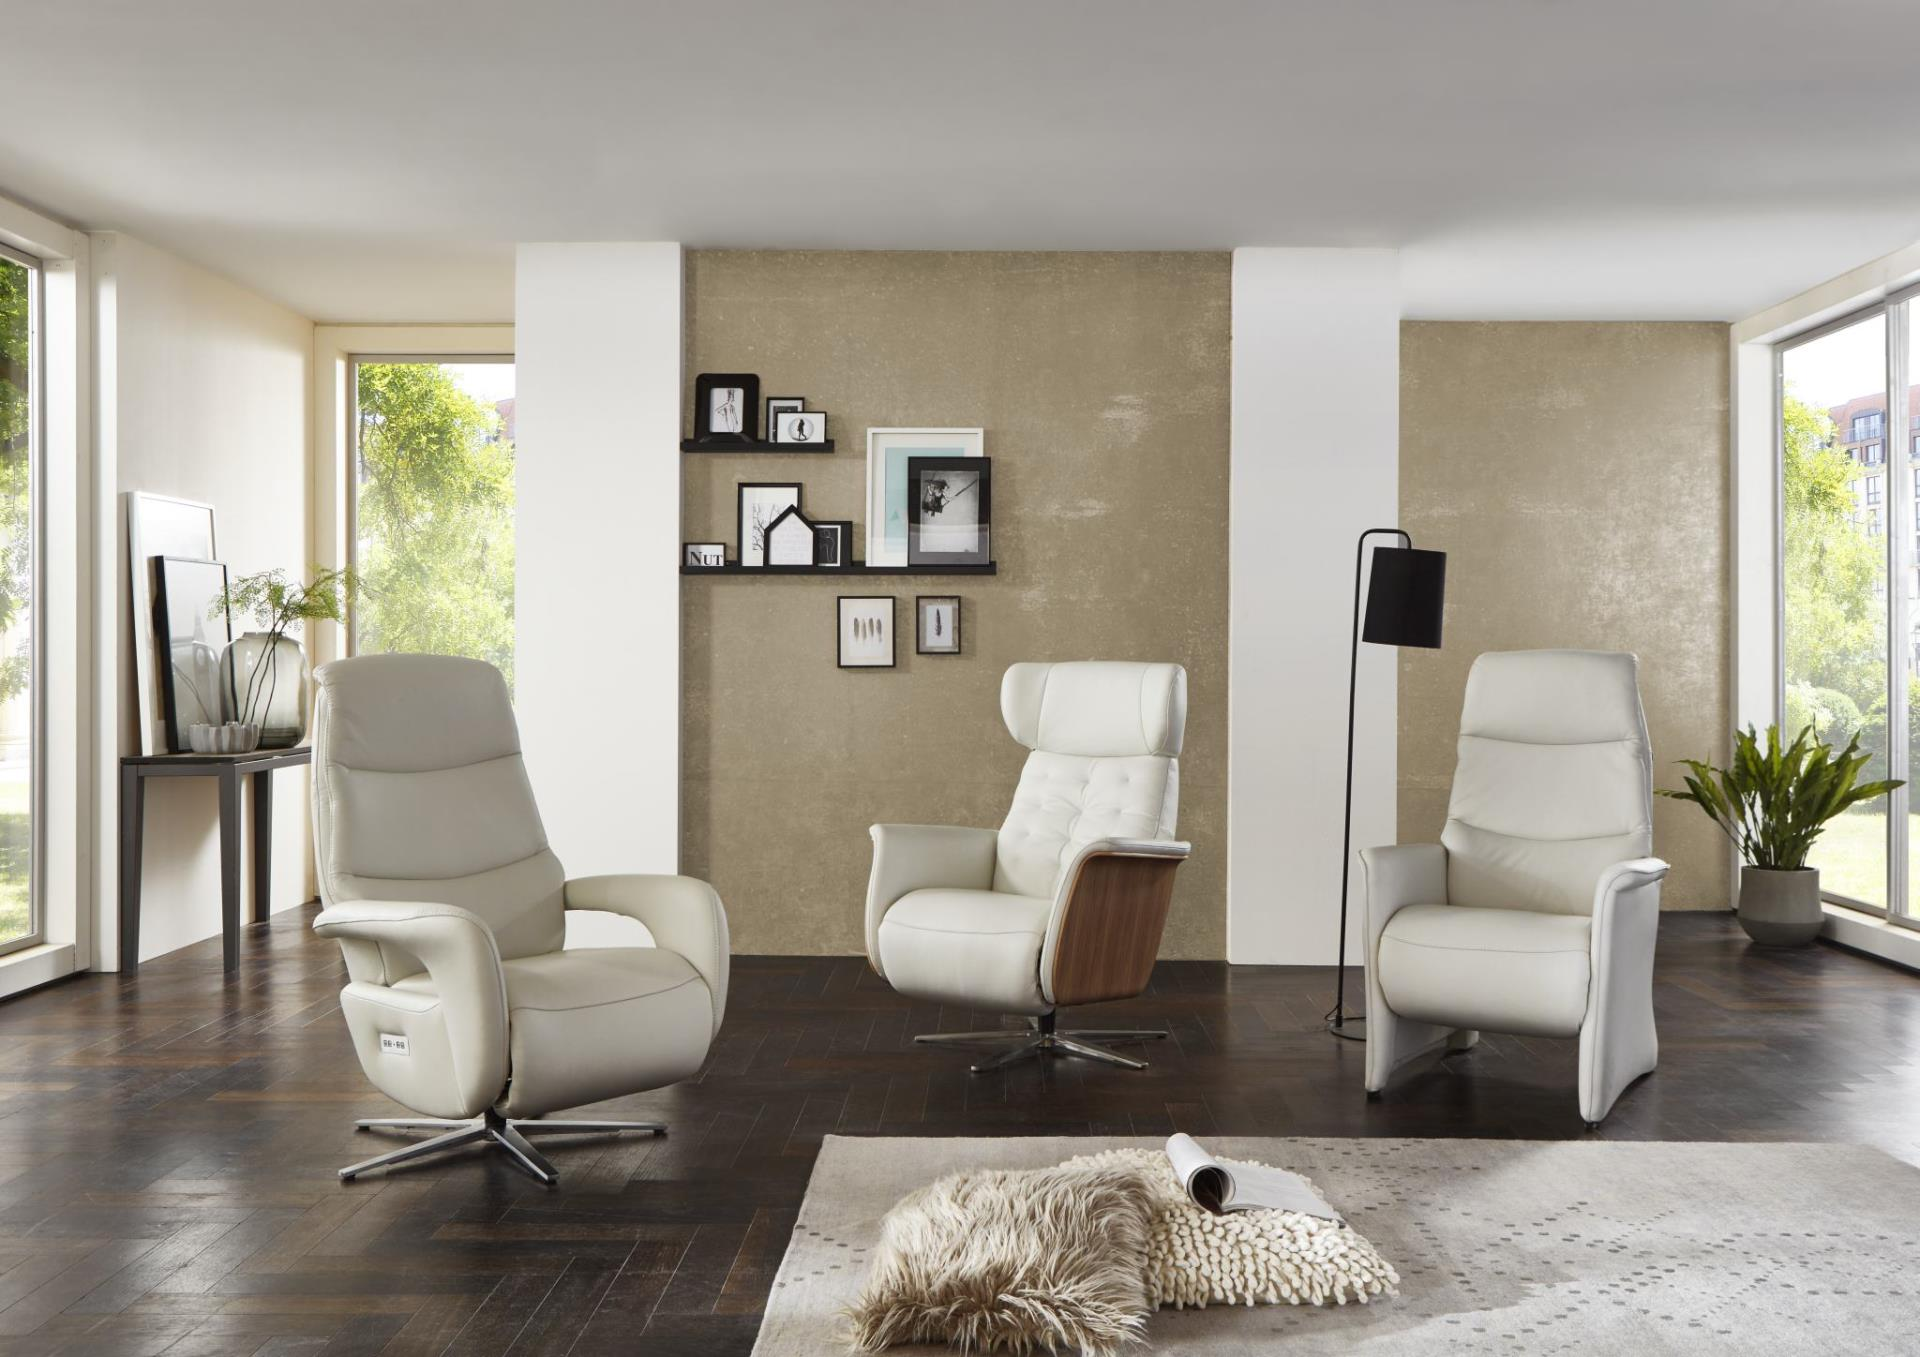 Harvink Stoelen Tweedehands Trendy Fauteuil Relax Manuel Esmans With Zuiderster Fauteuils